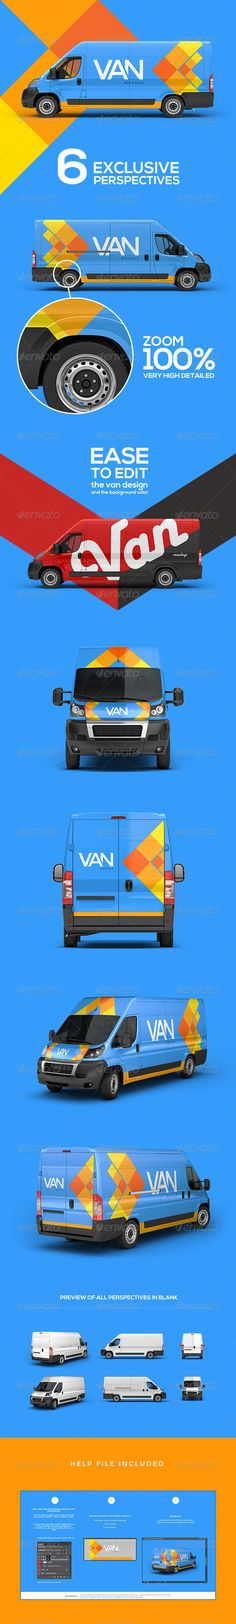 Buy Van Mockup by DoocaDesign on GraphicRiver. Include this mockup in your collection. With this kit of 6 PSDs with unique perspectives you value your work With Hy. Mockup Photoshop, Free Photoshop, Vehicle Signage, Vehicle Branding, Van Wrap, Van Design, Ford Transit, Mockup Templates, Car Brands